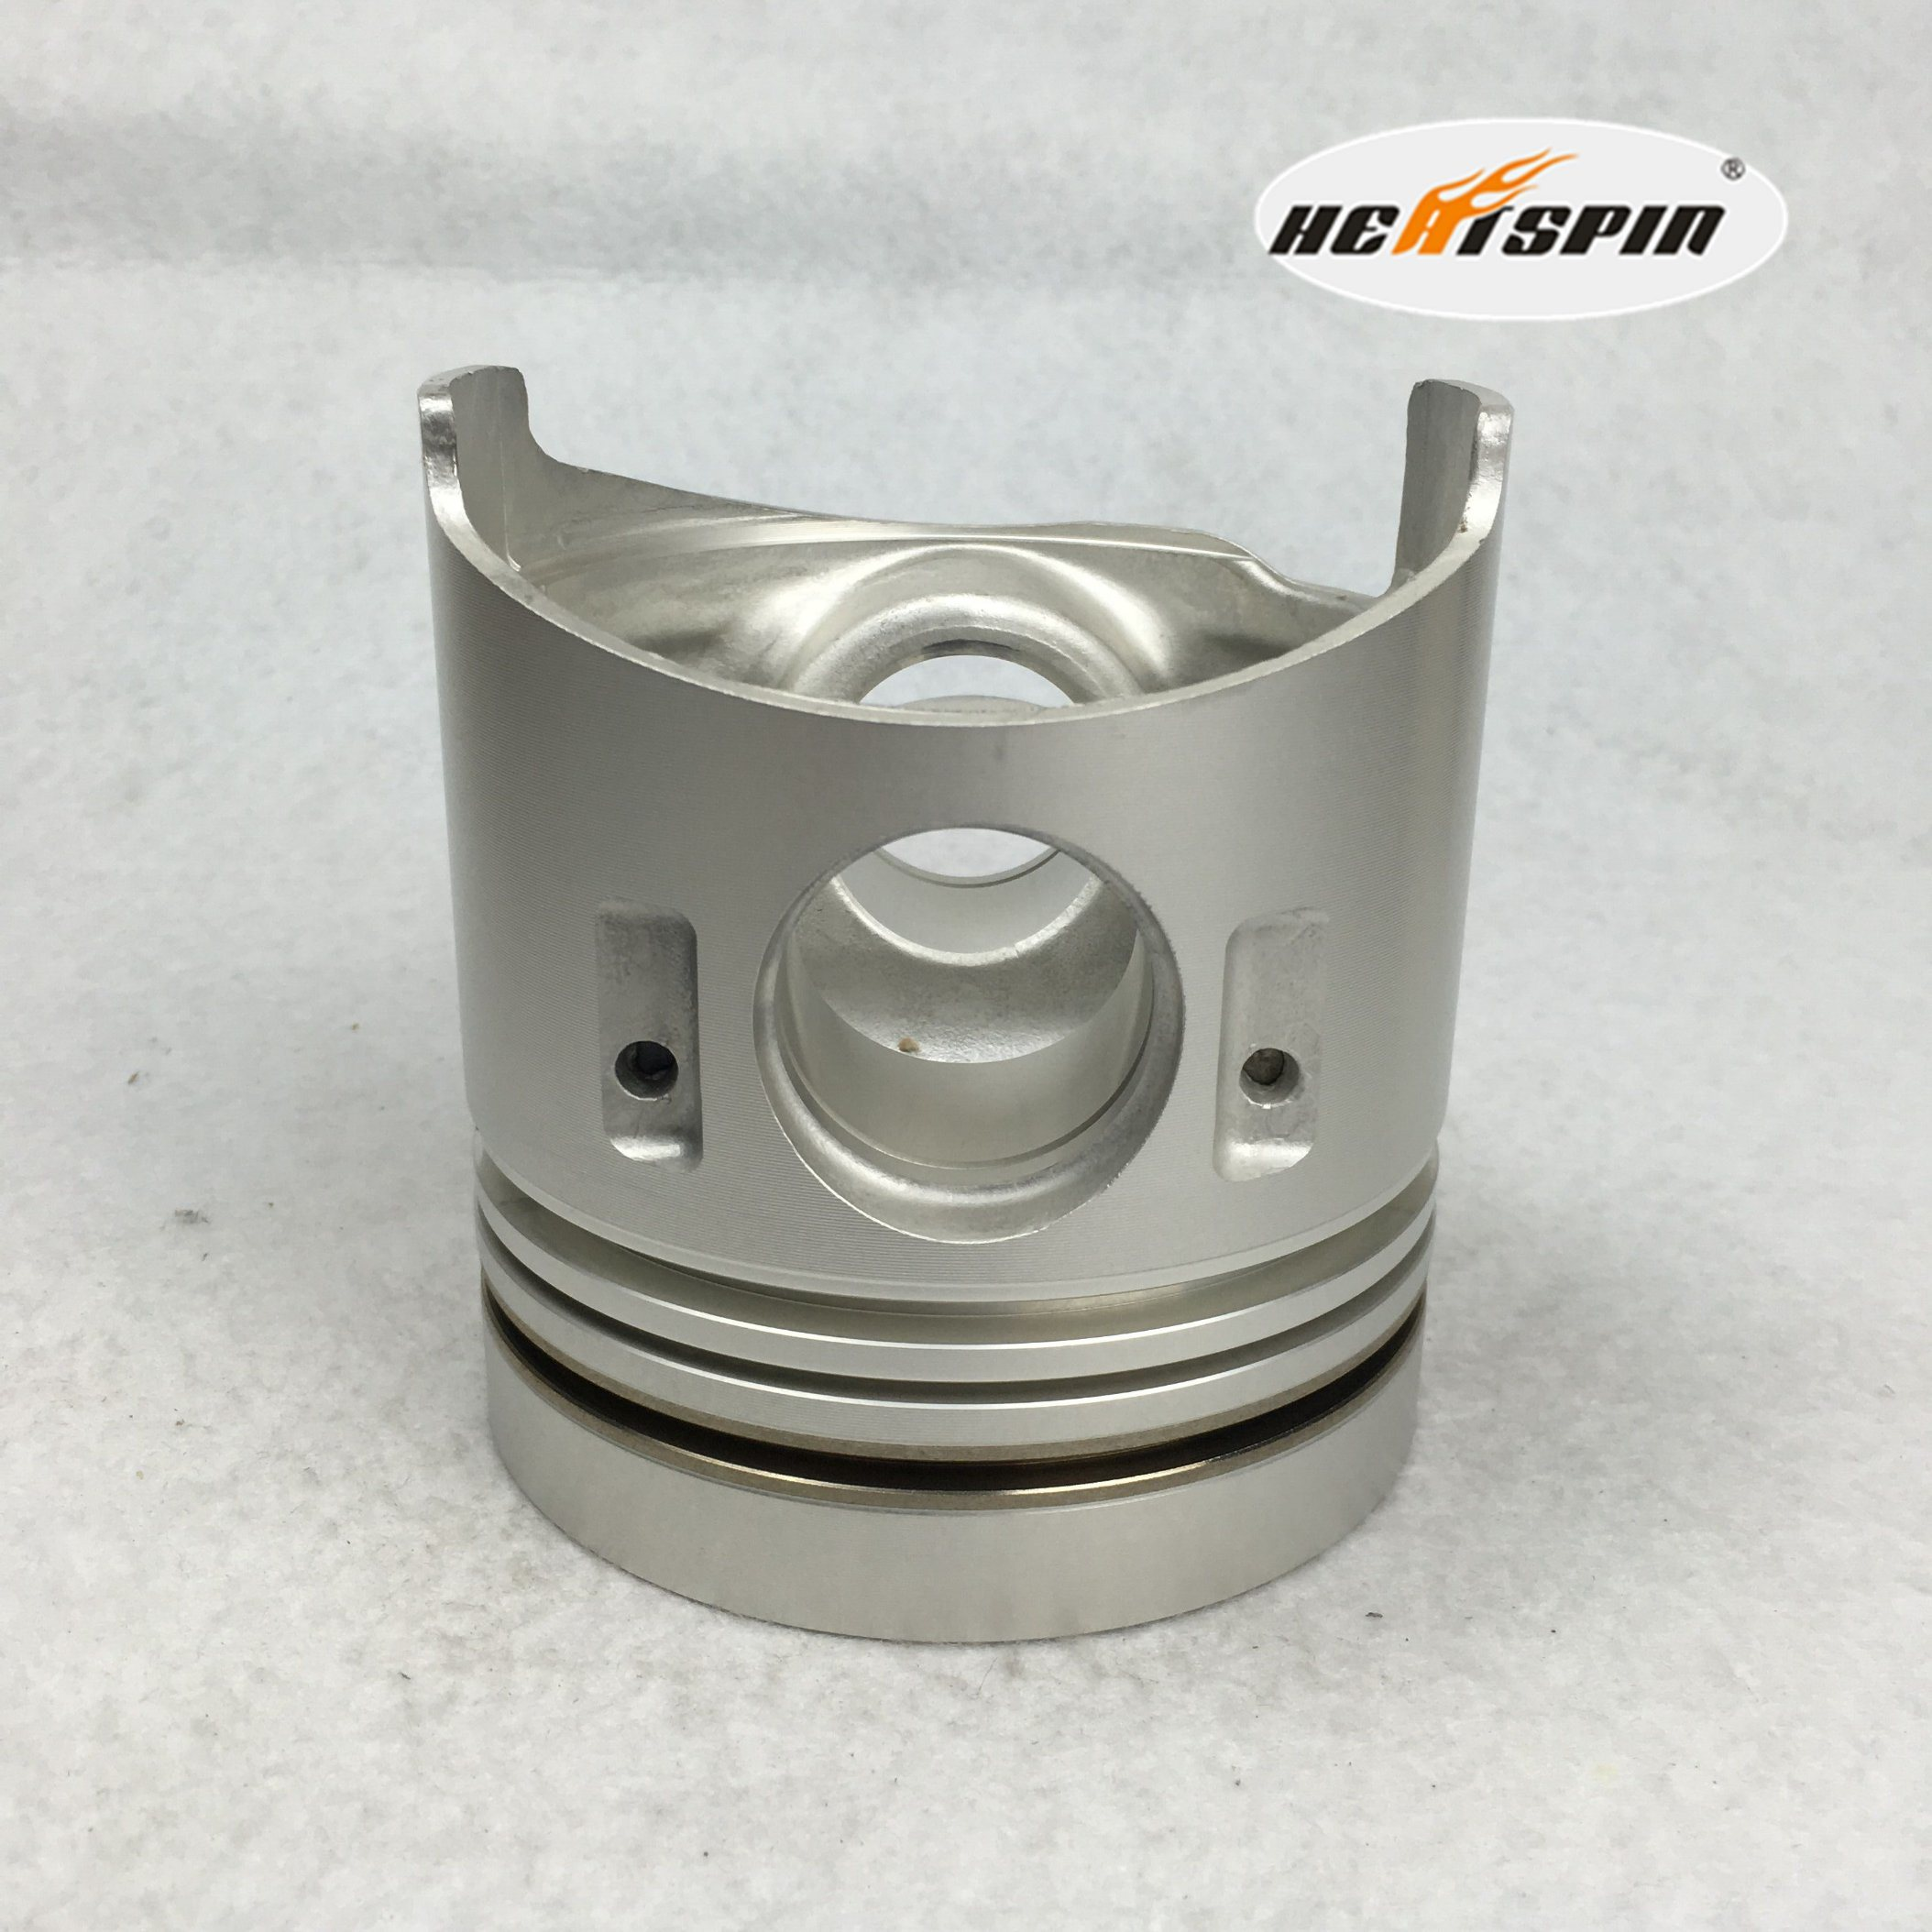 Engine Complete Piston 4D33 for Mitsubishi Spare Part Me016895